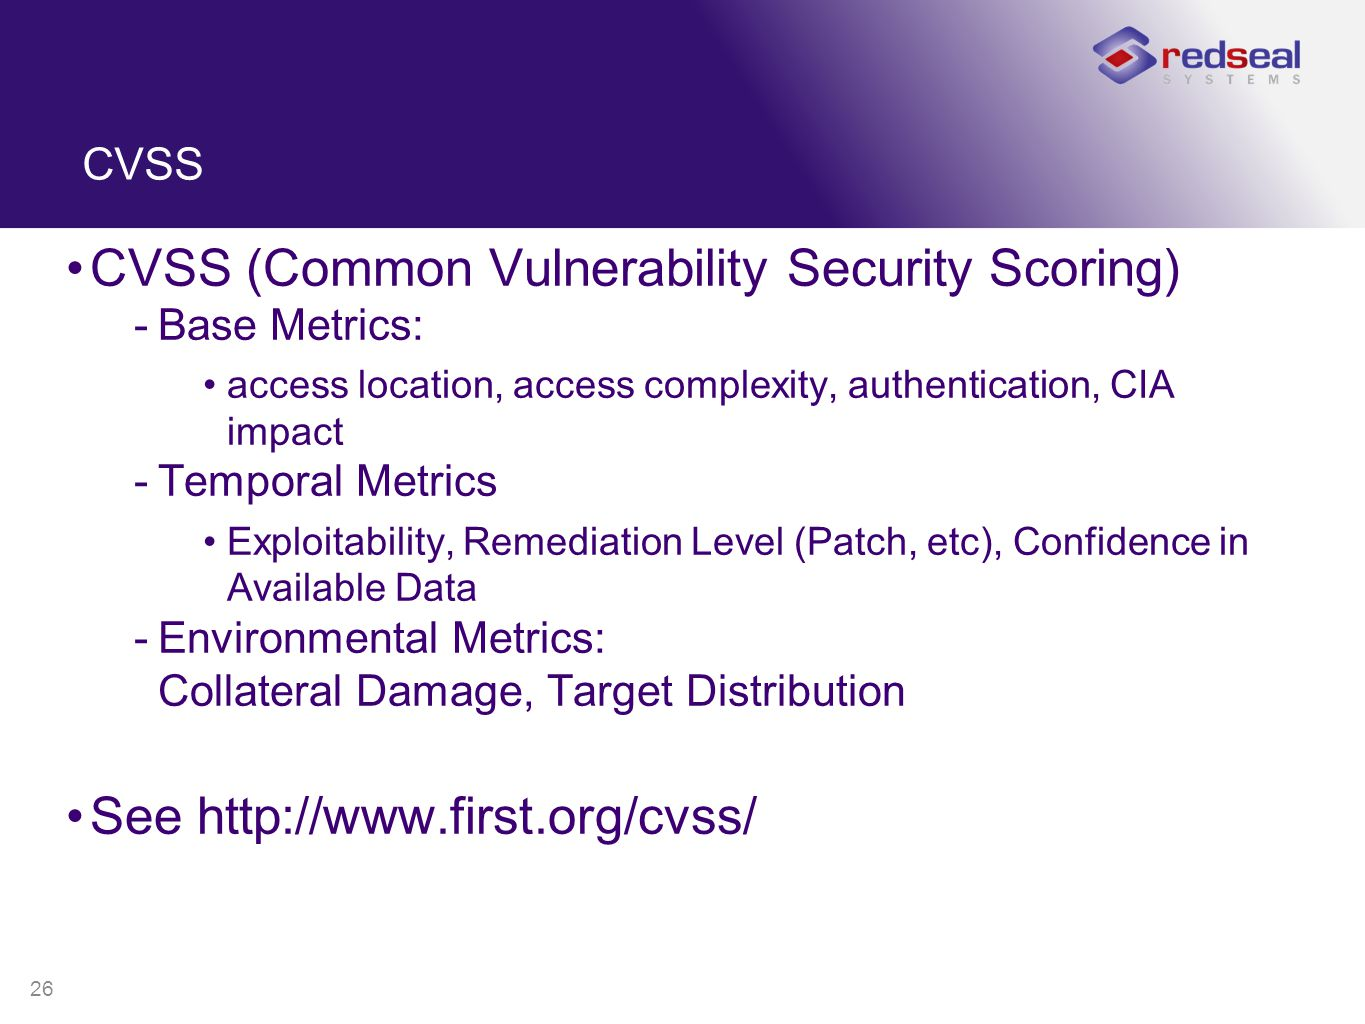 26 CVSS CVSS (Common Vulnerability Security Scoring) -Base Metrics: access location, access complexity, authentication, CIA impact -Temporal Metrics Exploitability, Remediation Level (Patch, etc), Confidence in Available Data -Environmental Metrics: Collateral Damage, Target Distribution See http://www.first.org/cvss/